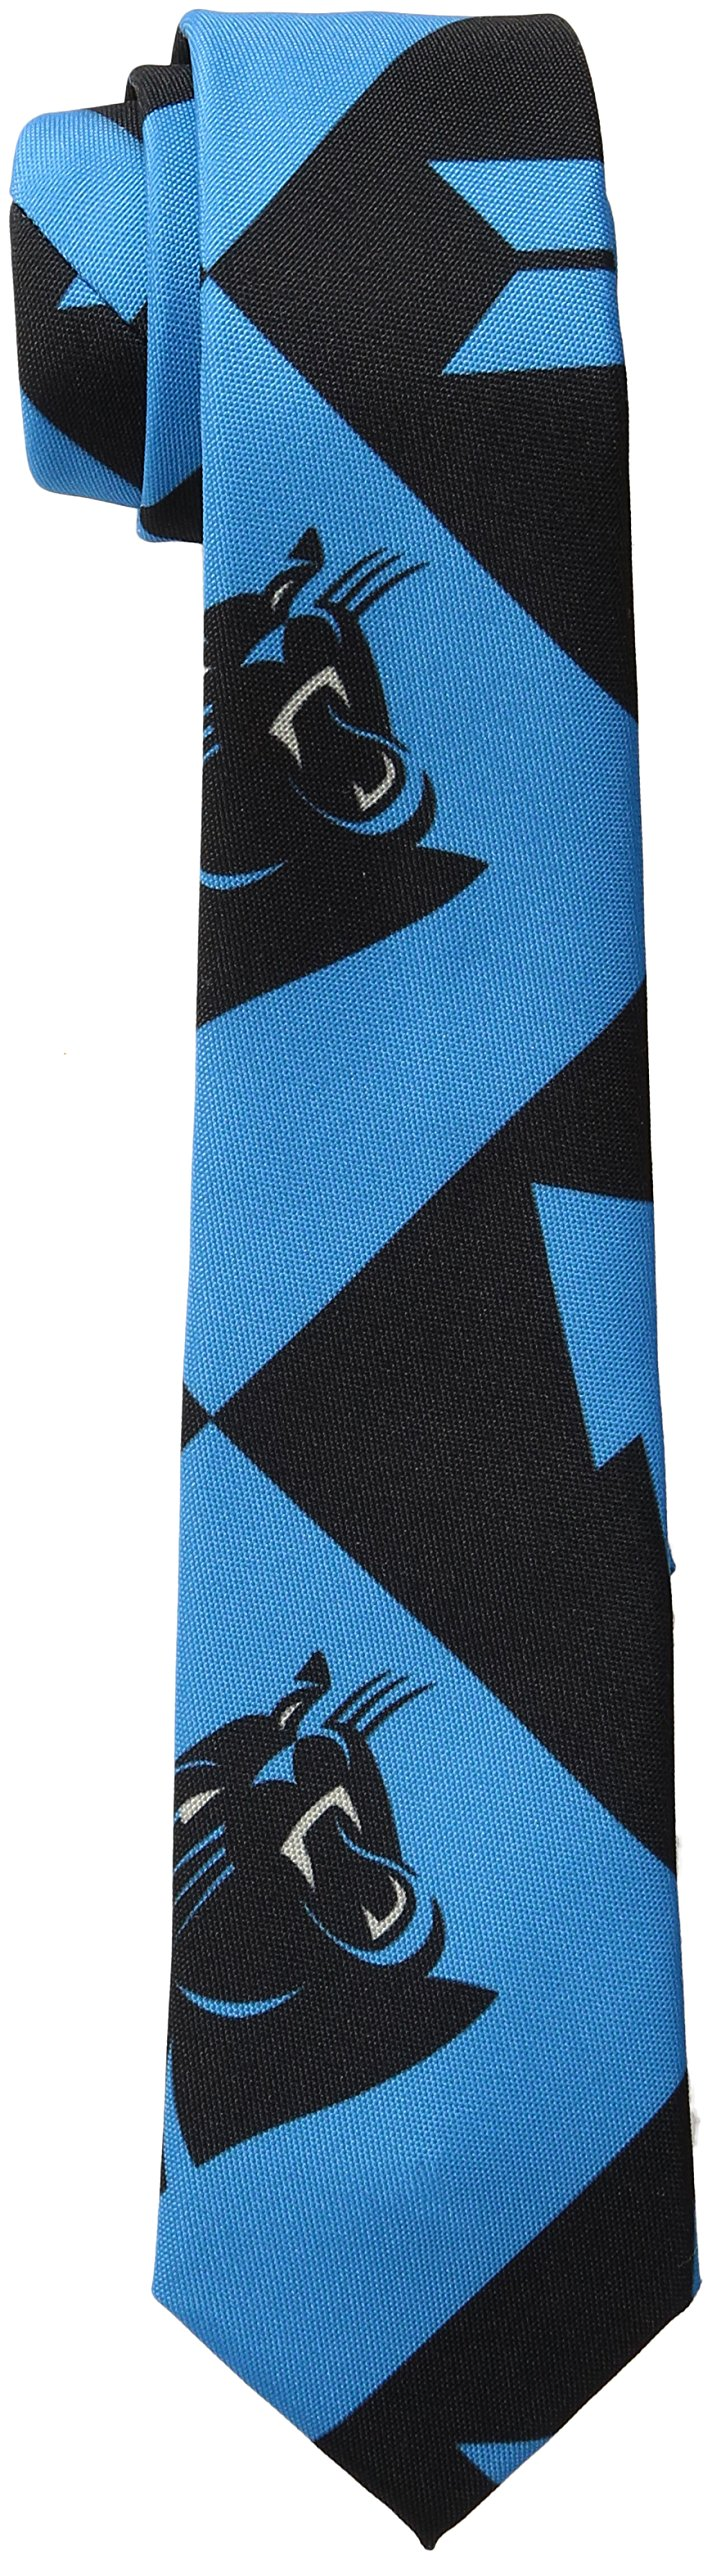 FOCO Carolina Panthers Patches Ugly Printed Tie - Mens